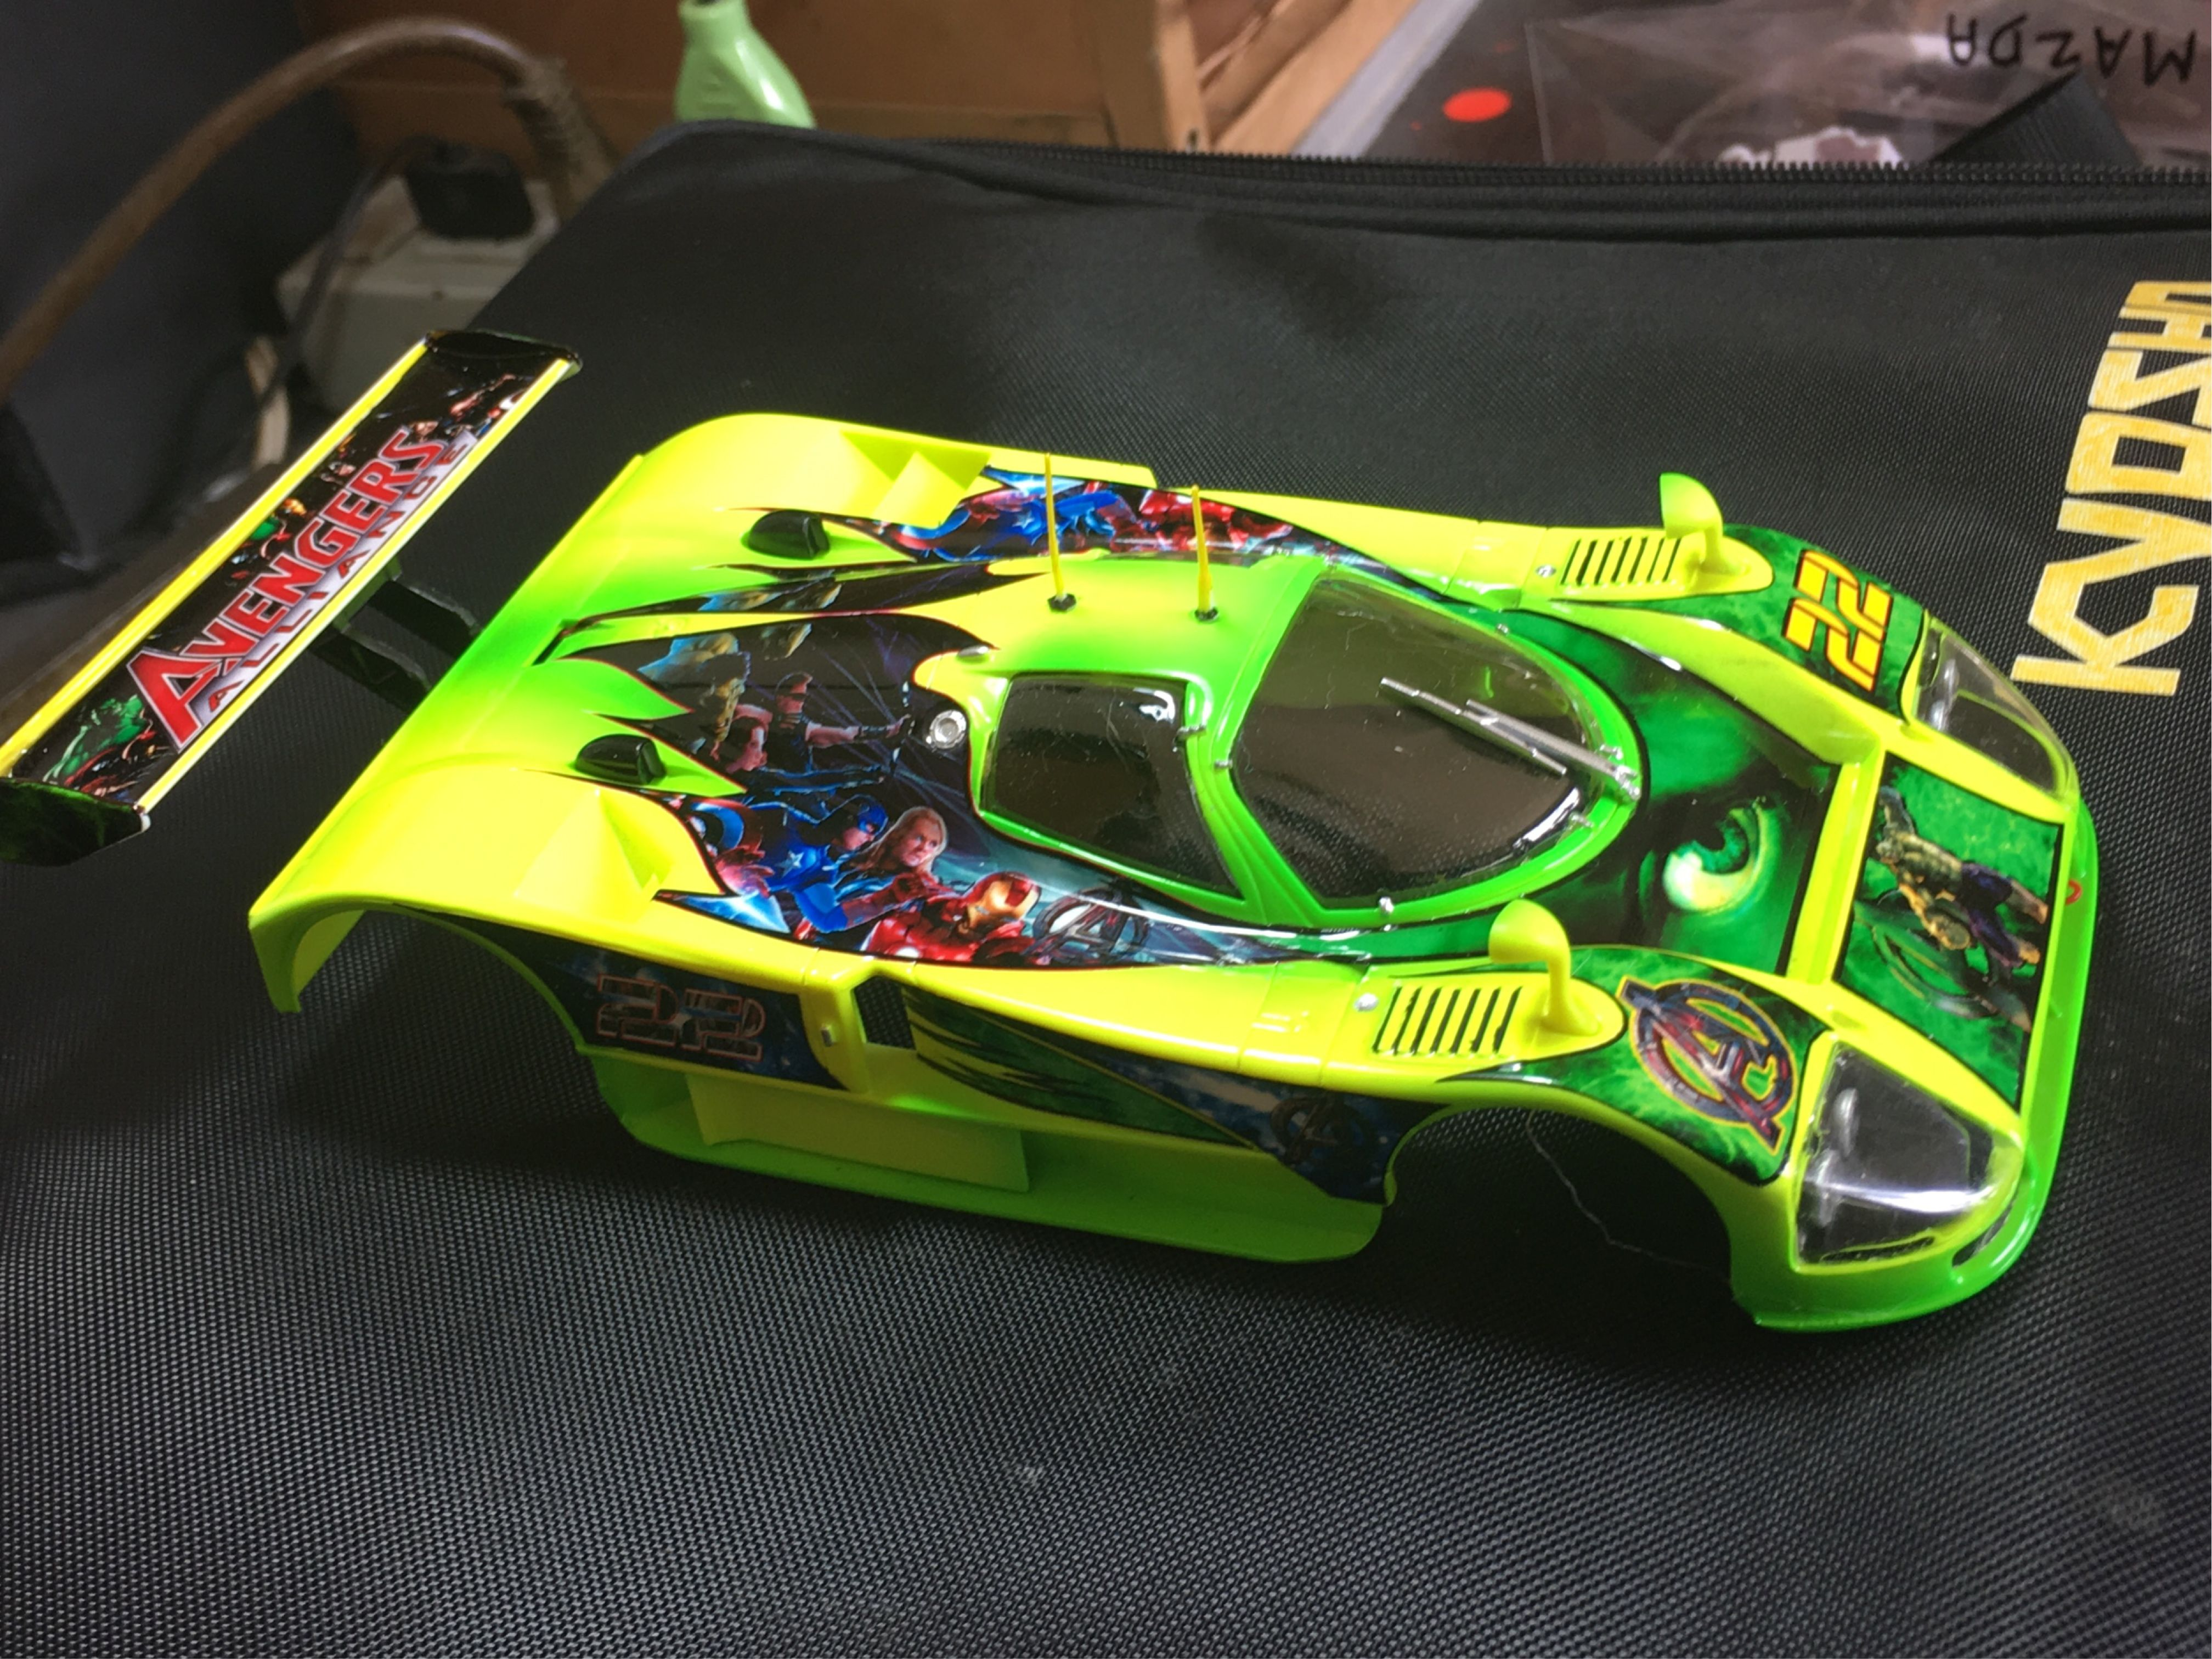 Pin By Kanun75 On Mini Z Collection Car Paint Jobs Pretty Cars Rc Cars